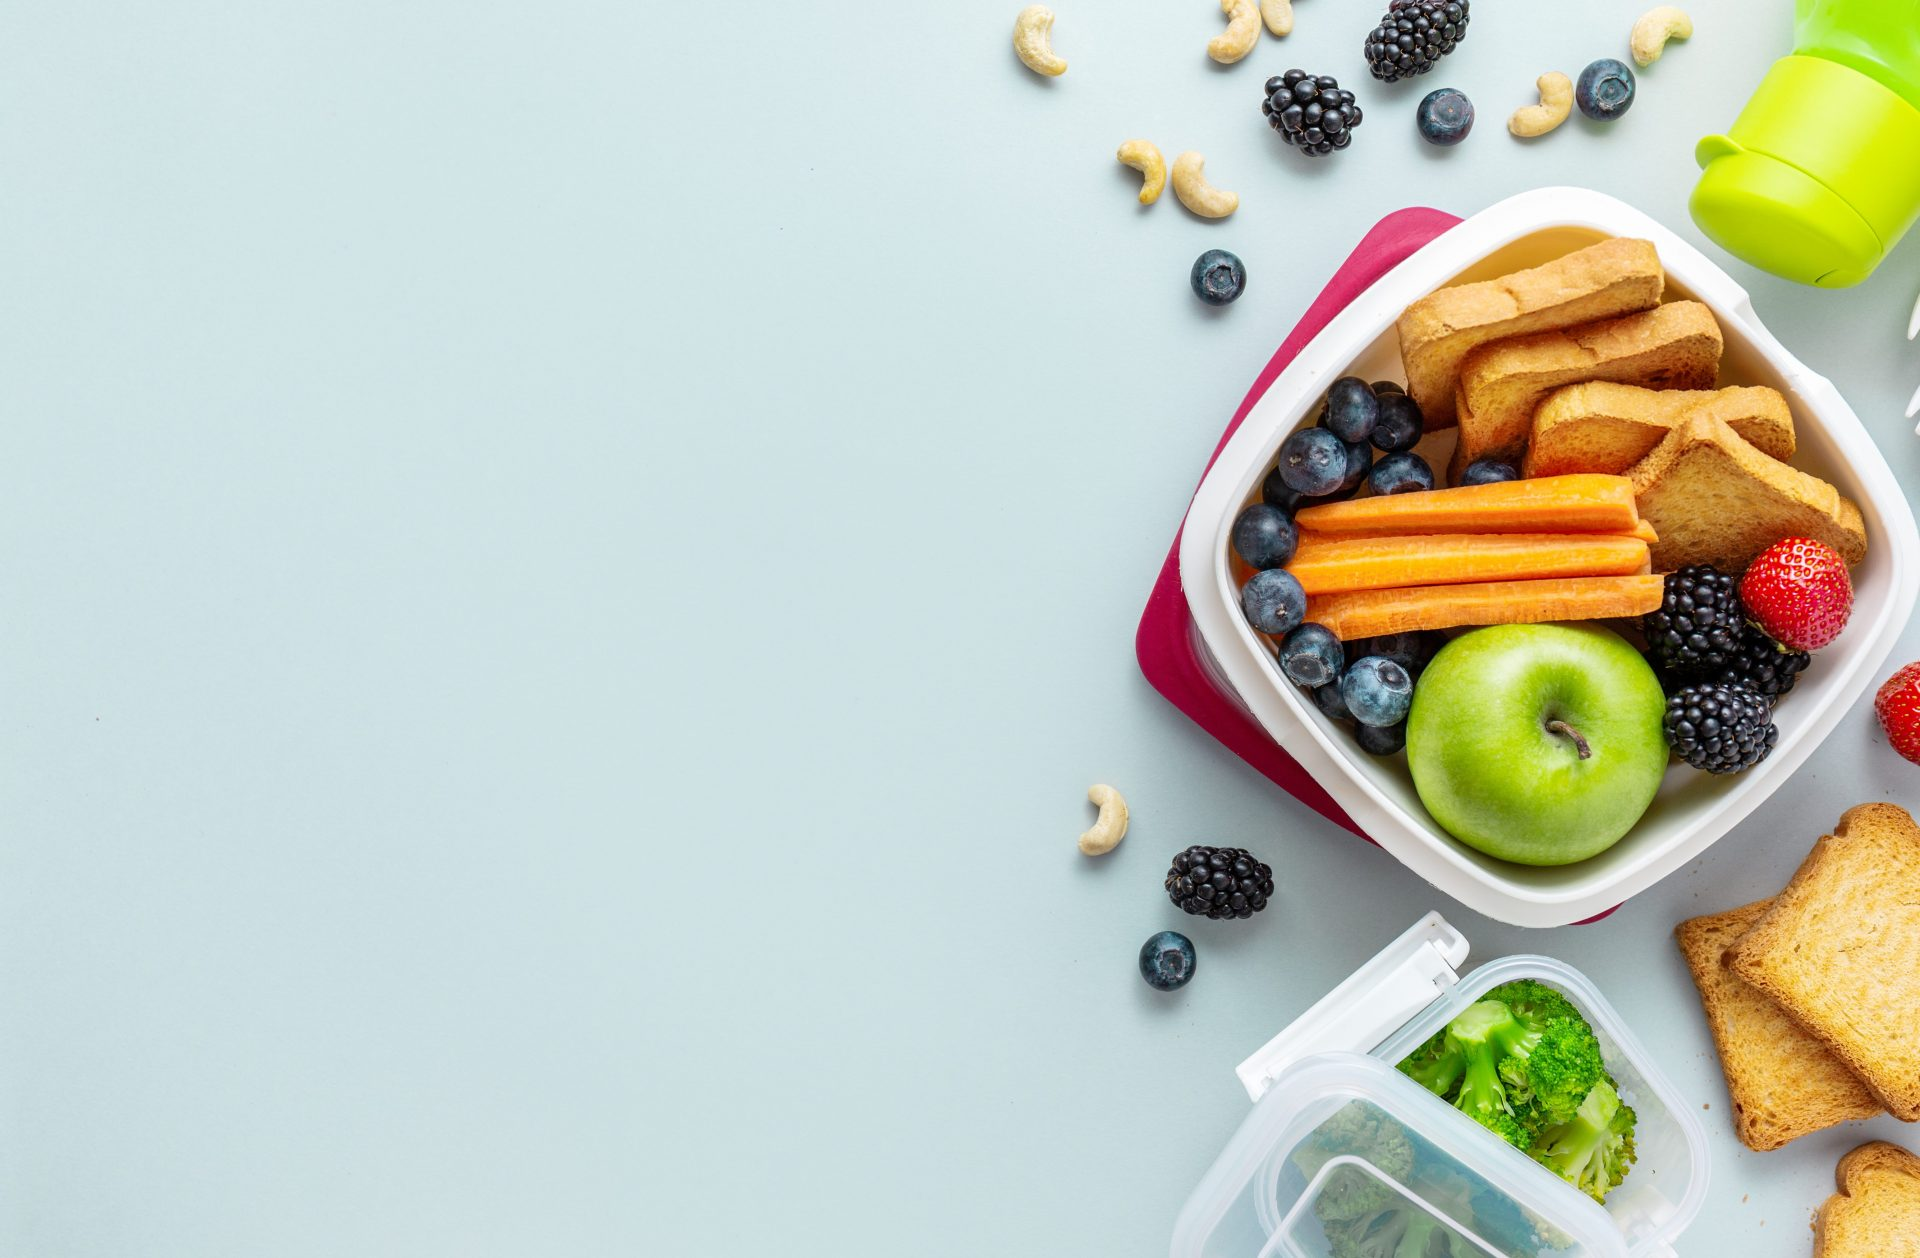 Top 10 back to school lunch ideas by NutriProCan